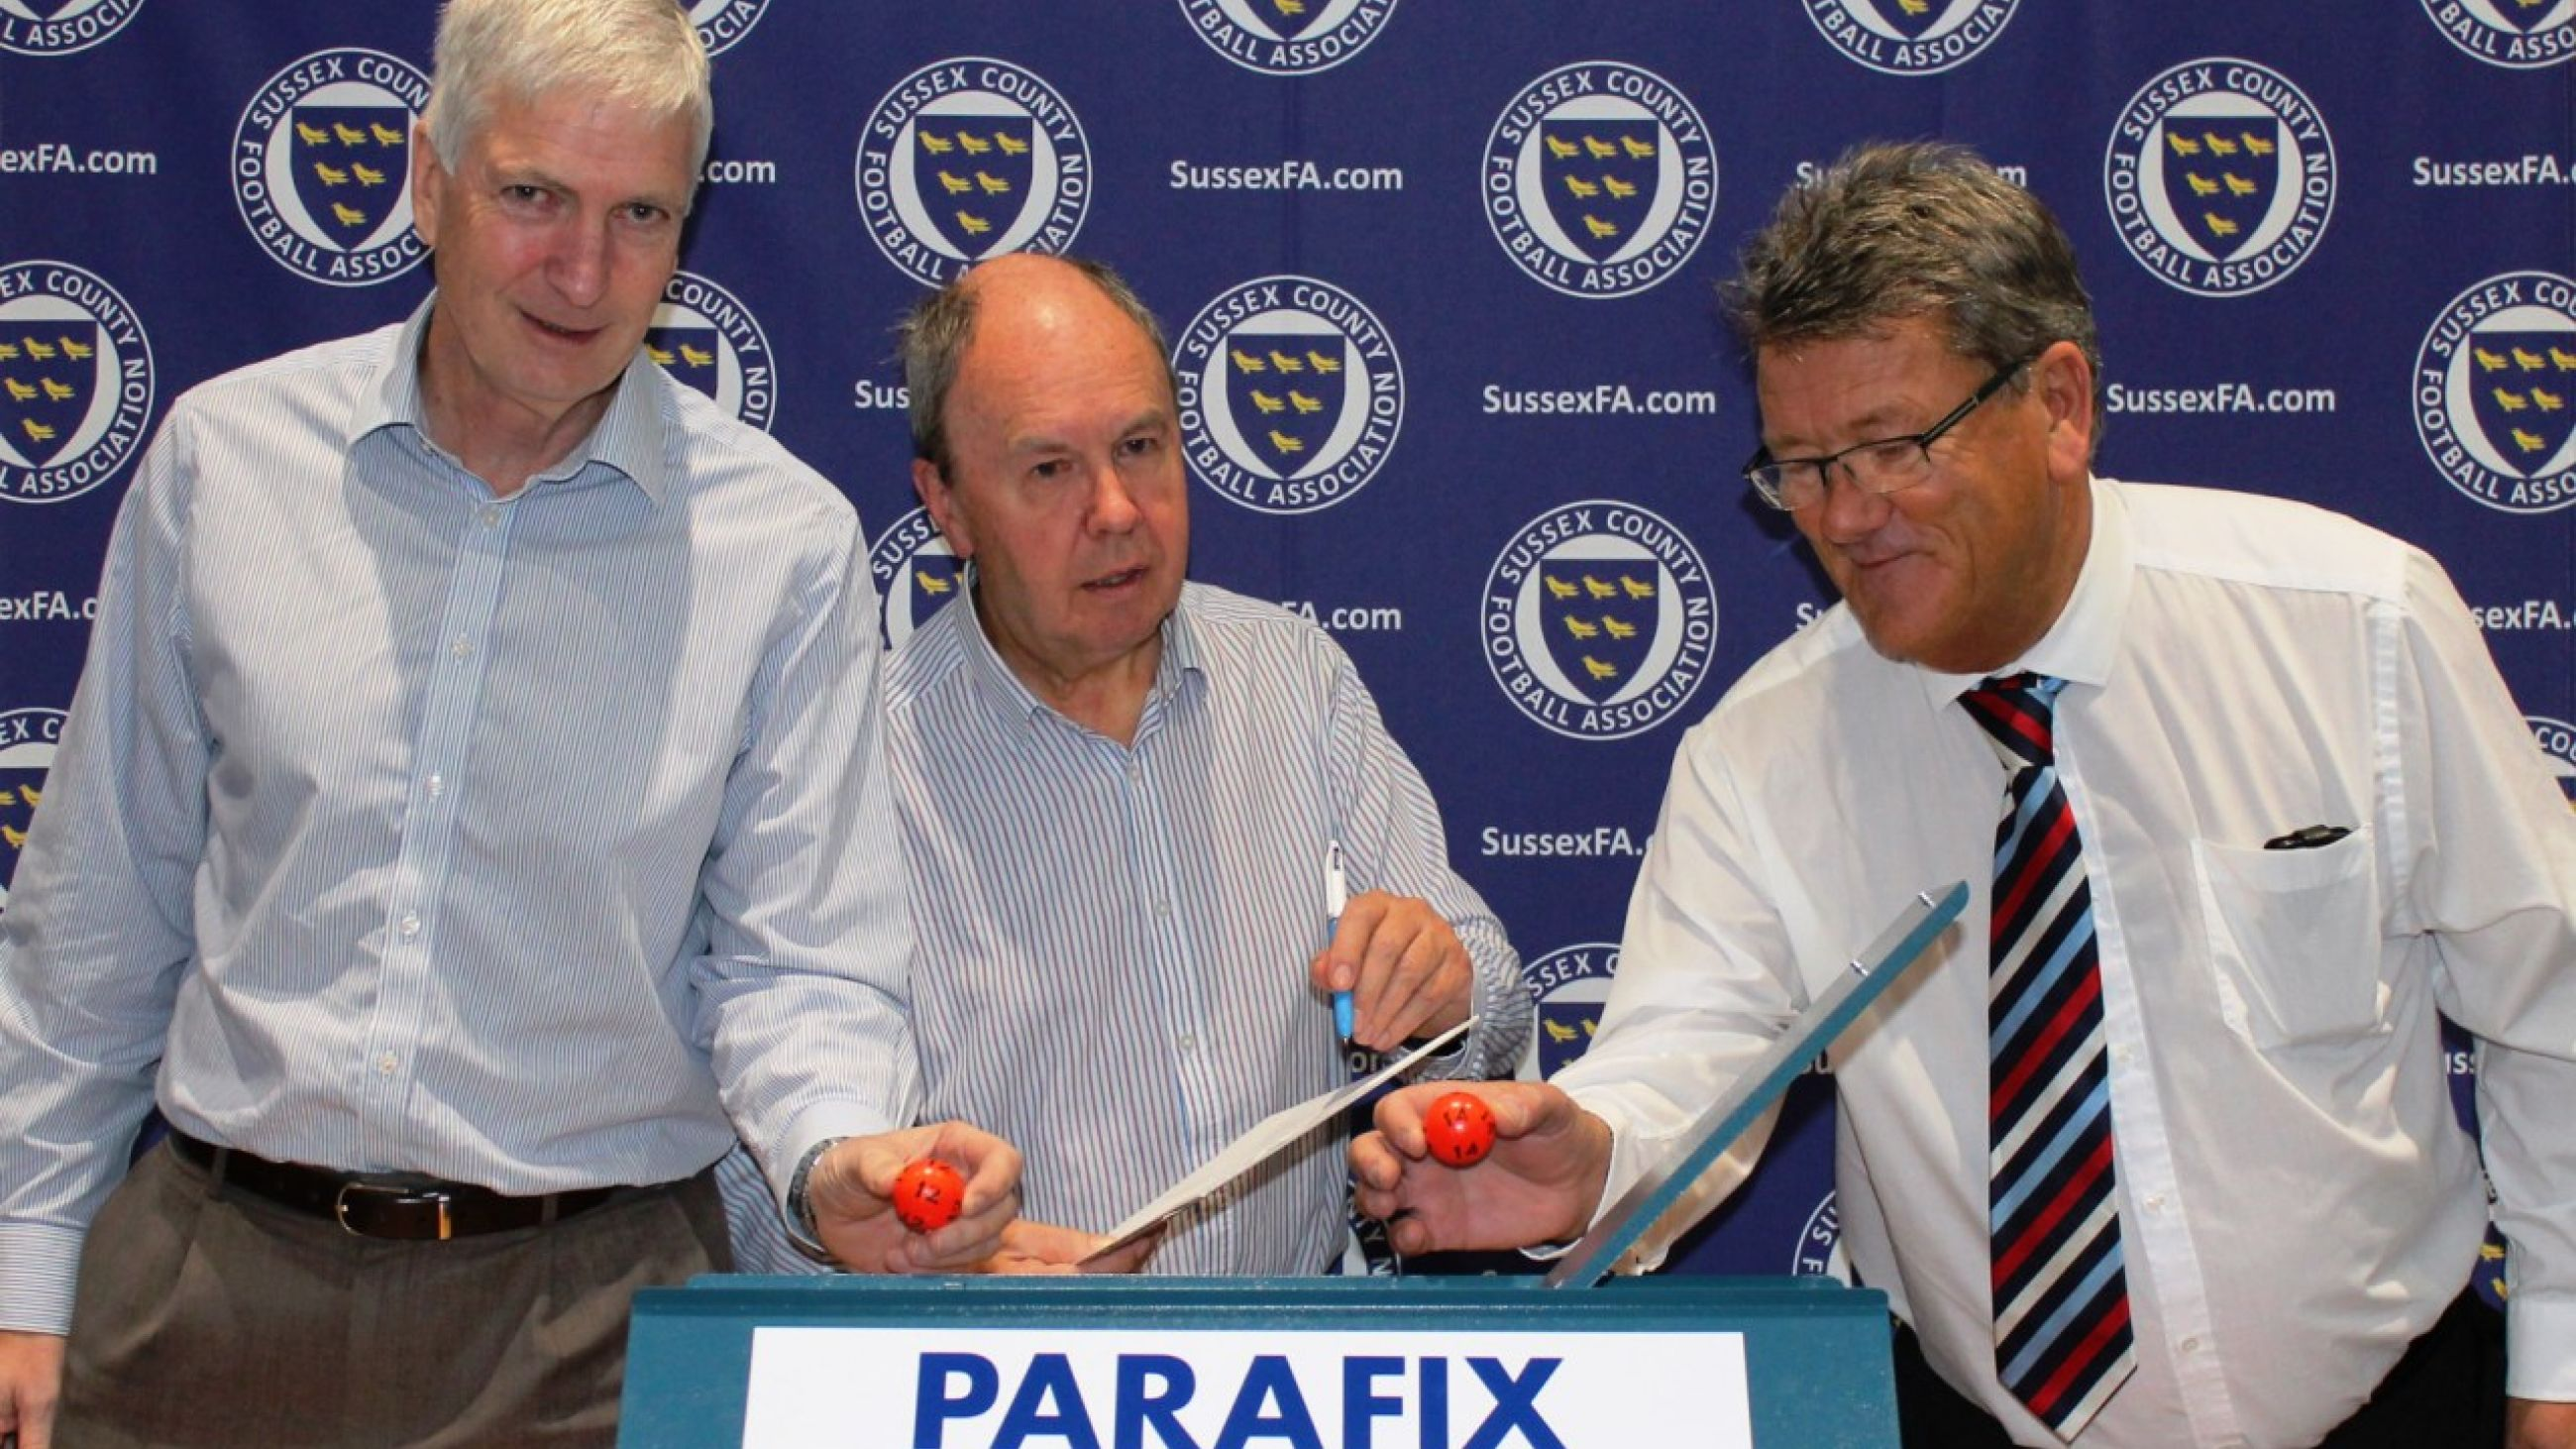 Parafix Sussex Senior Challenge Cup 3rd Round Draw 2016